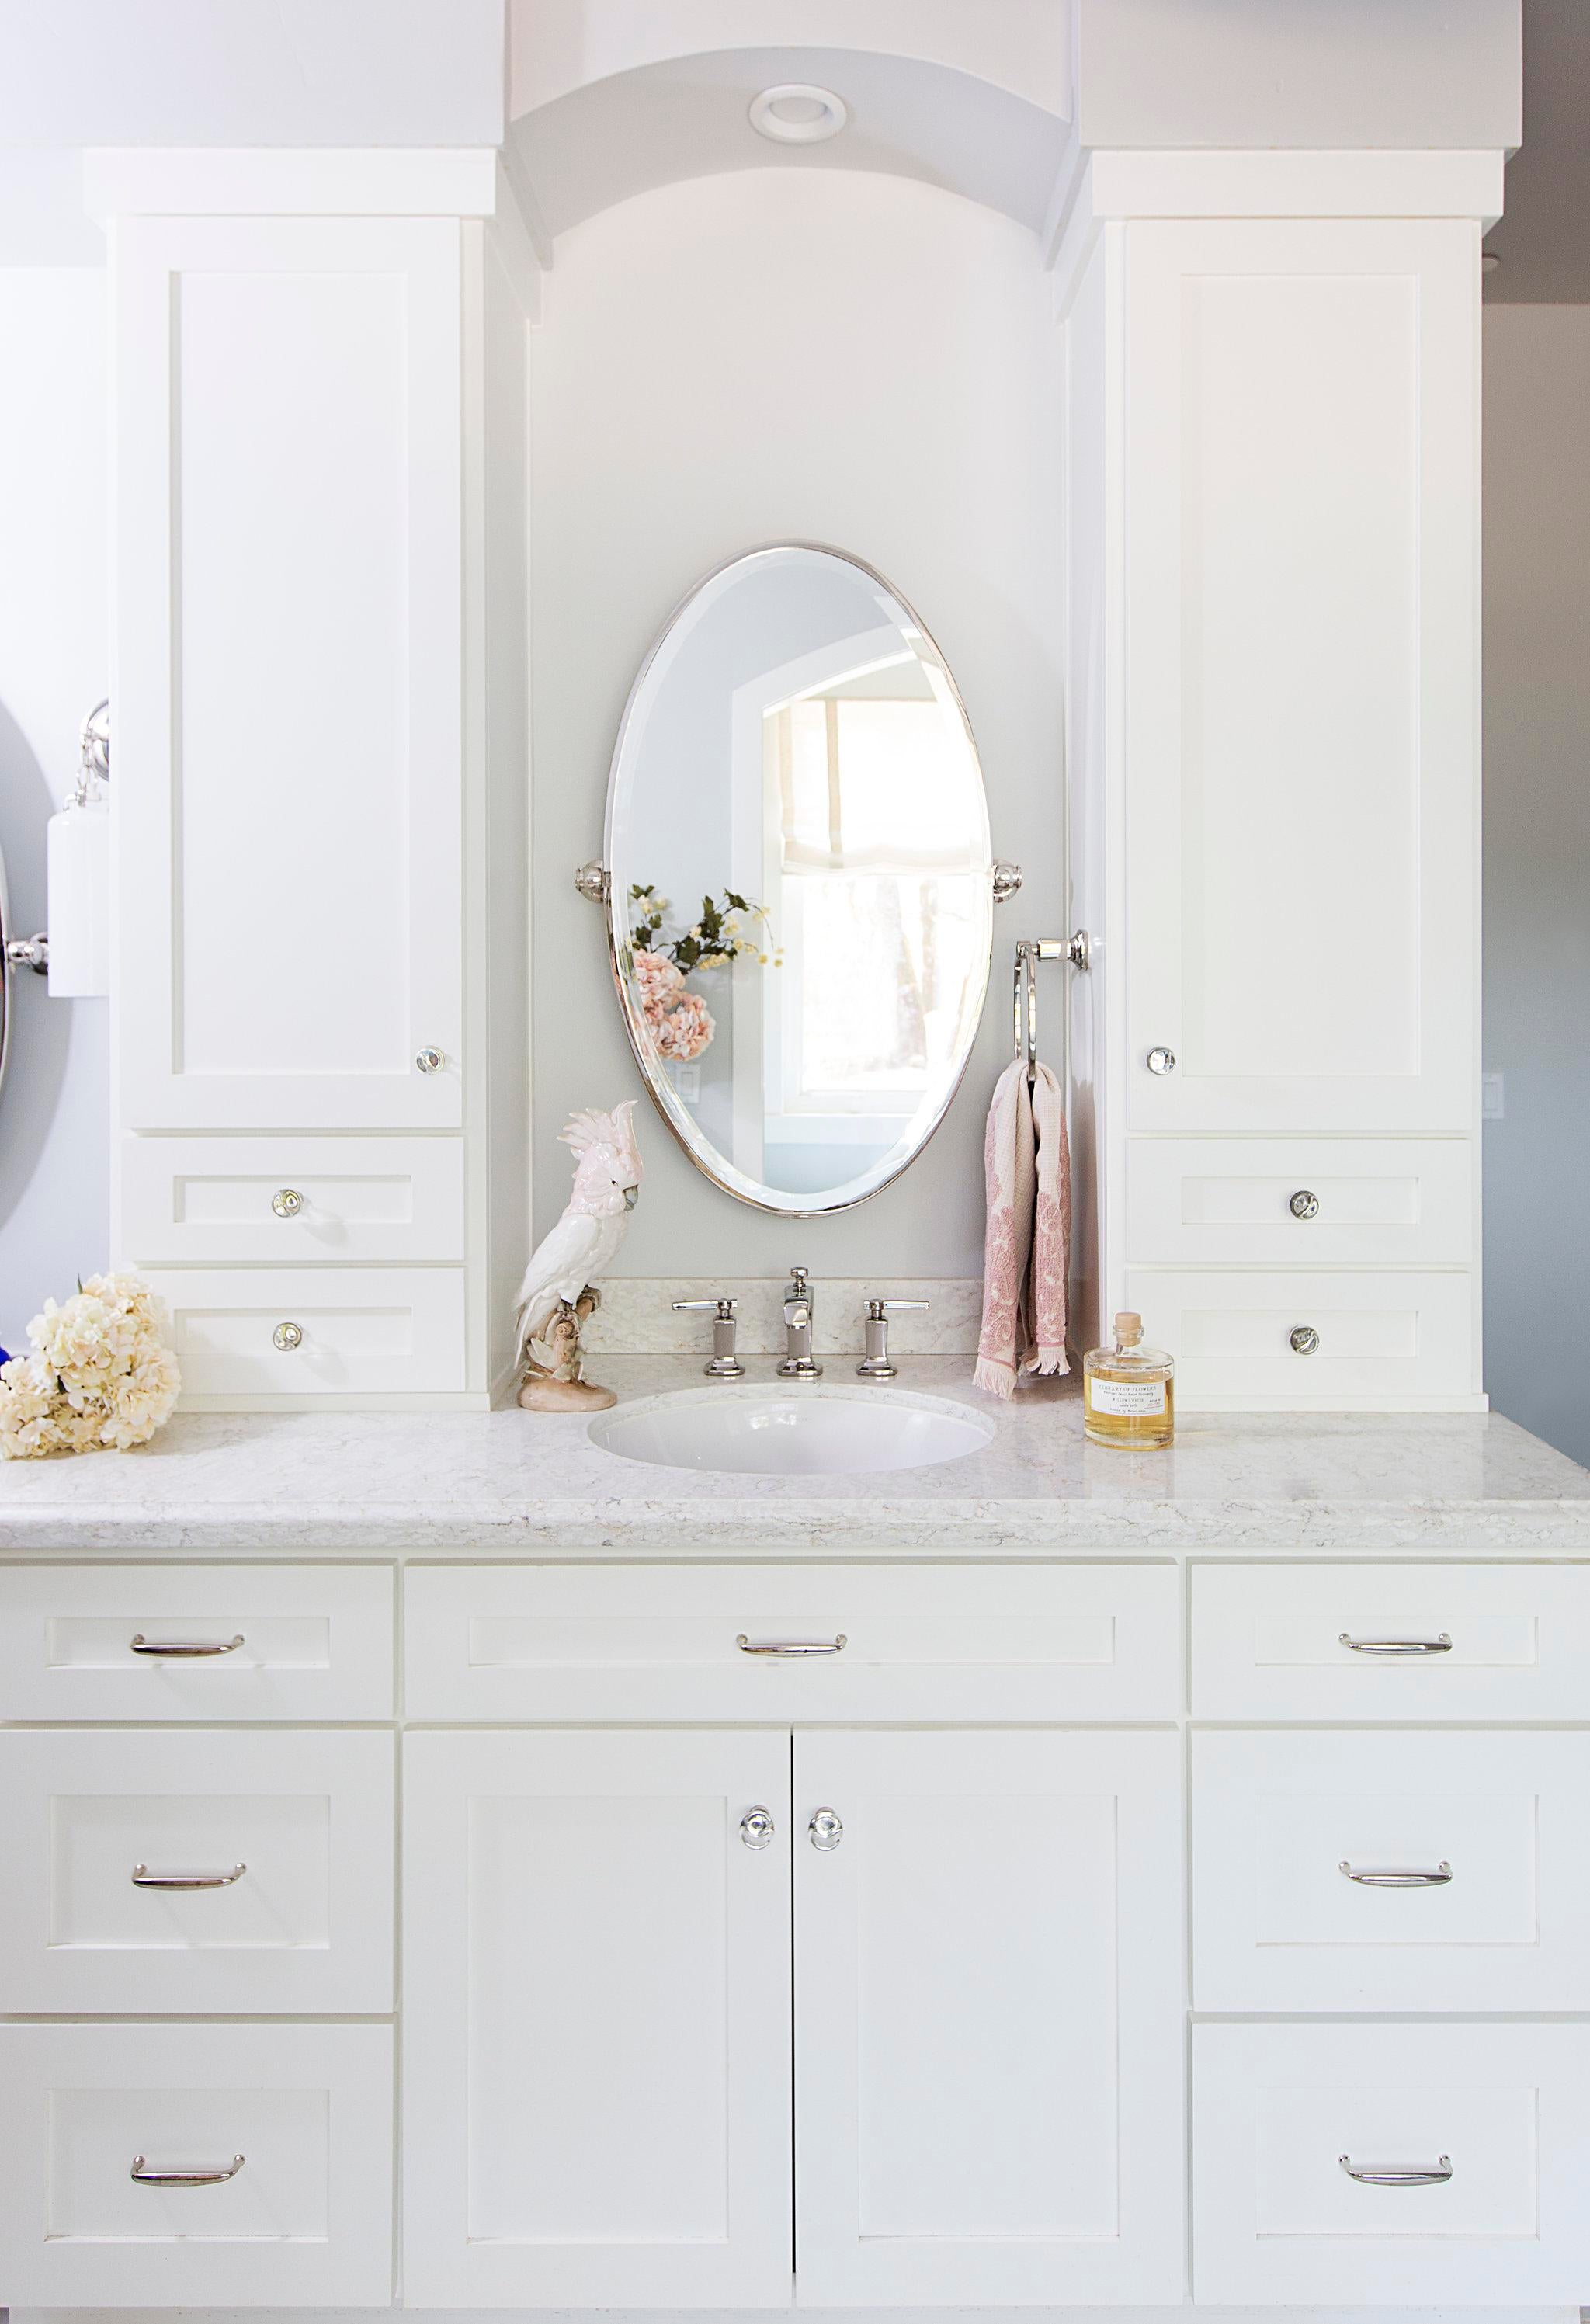 Elegant Bathroom Vanity With White Countertops And Cabinets.